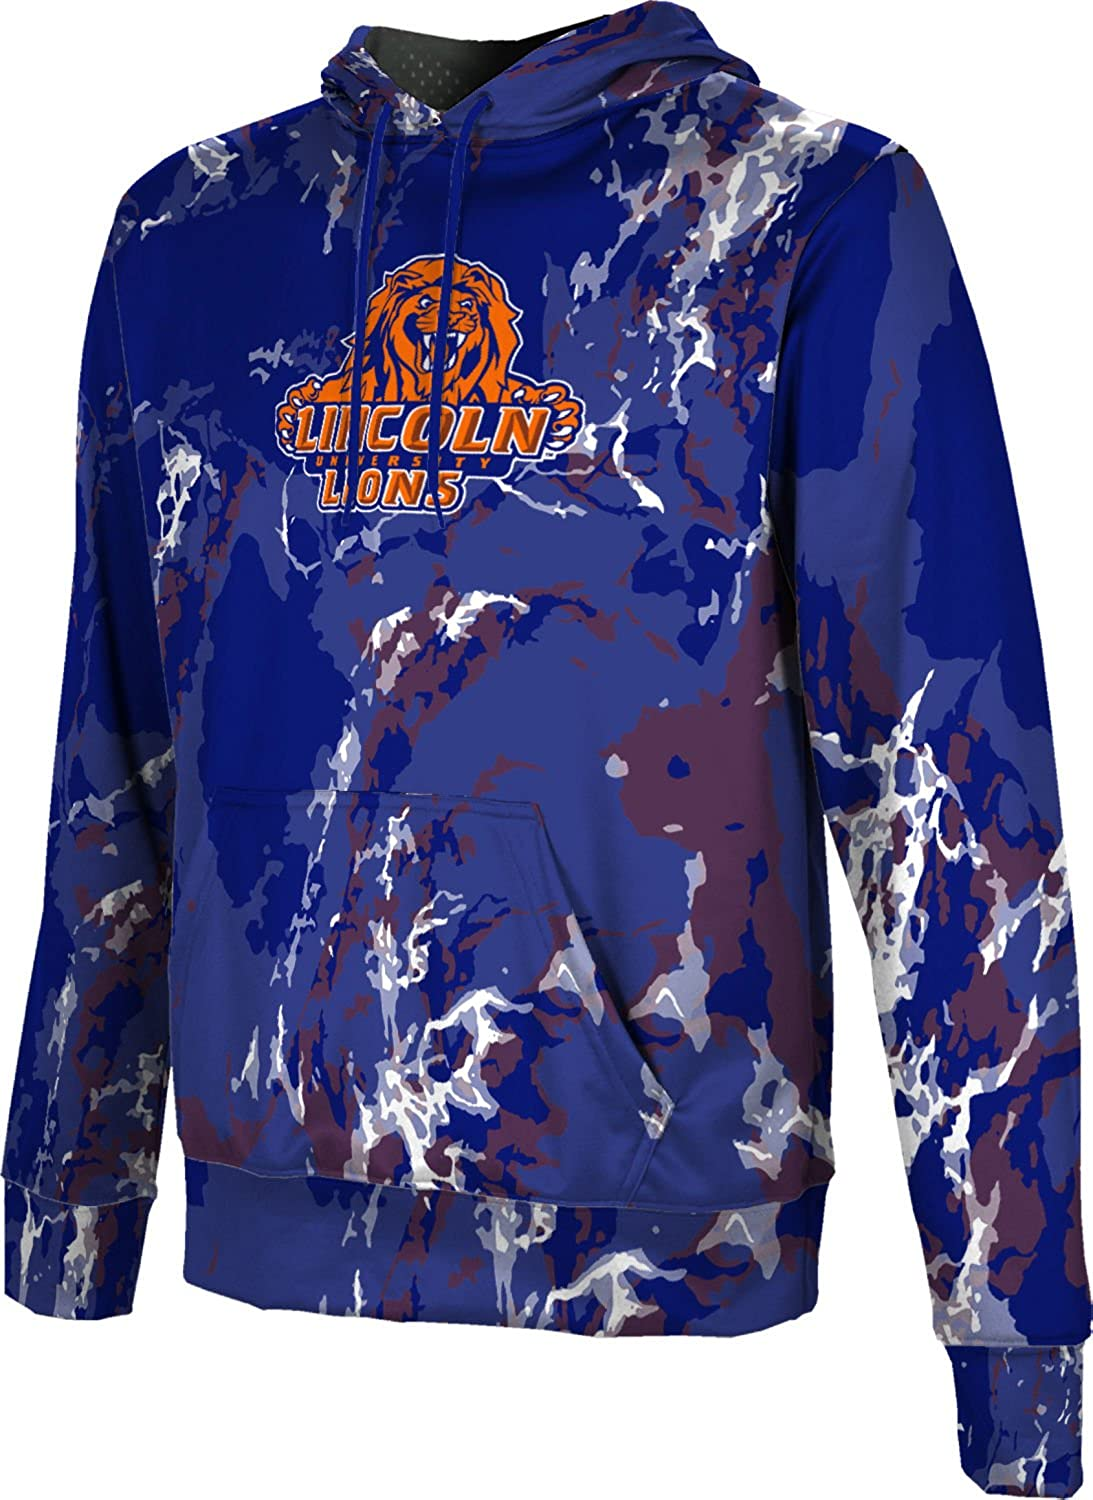 Lincoln University PA Challenge the lowest price of Japan Boys' Pullover Swe Inexpensive Spirit Hoodie School